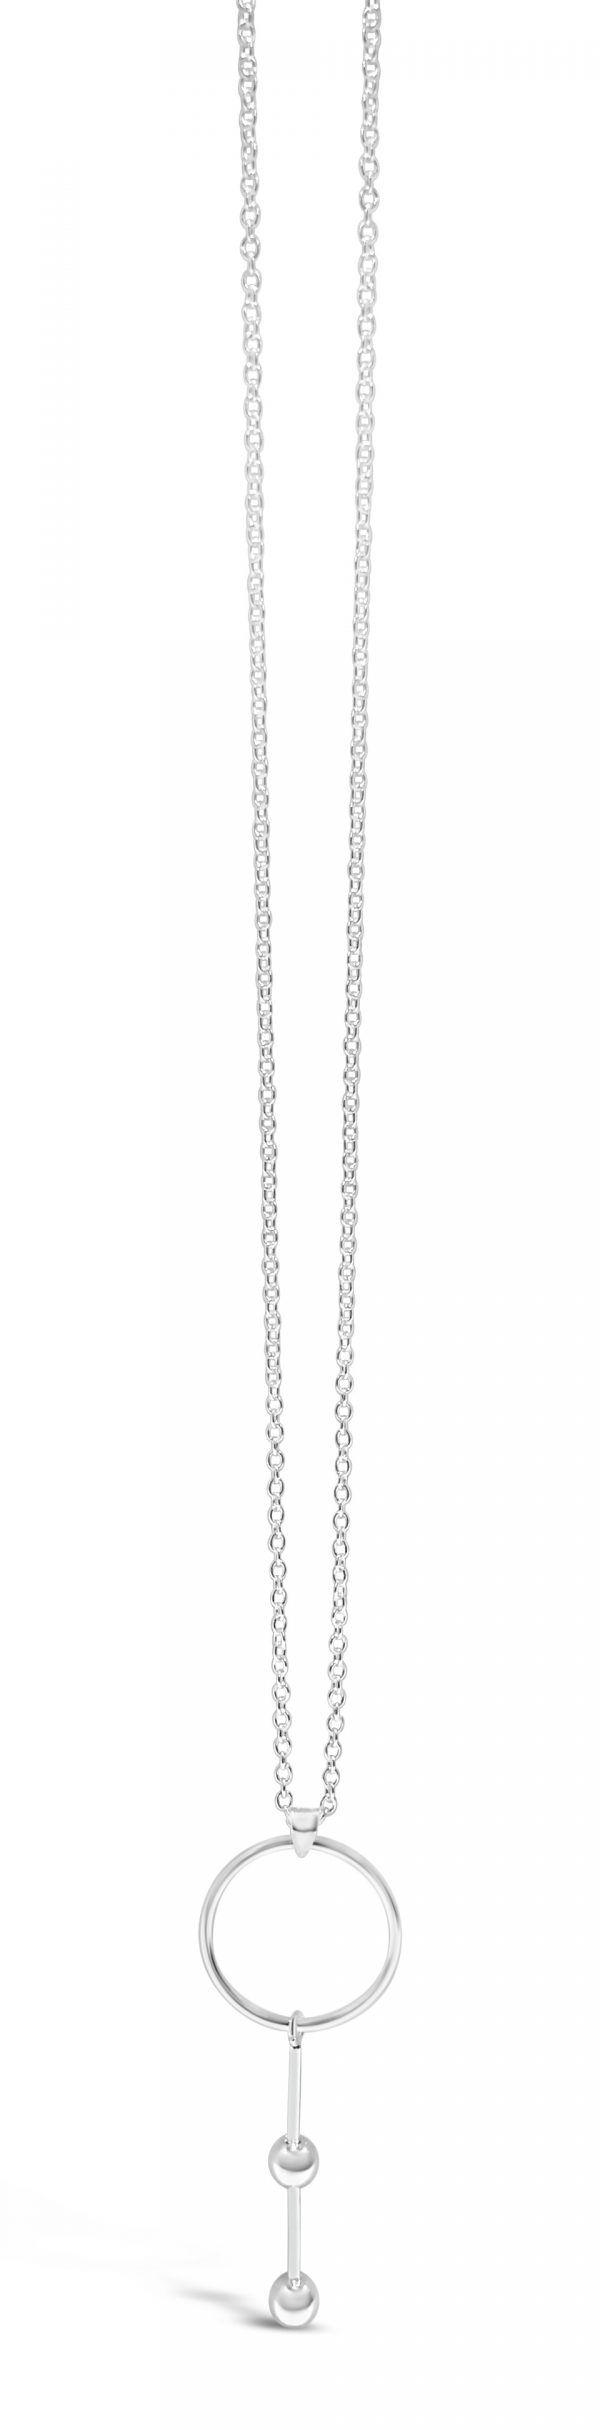 ABSOLUTE N1095SL NECKLACE